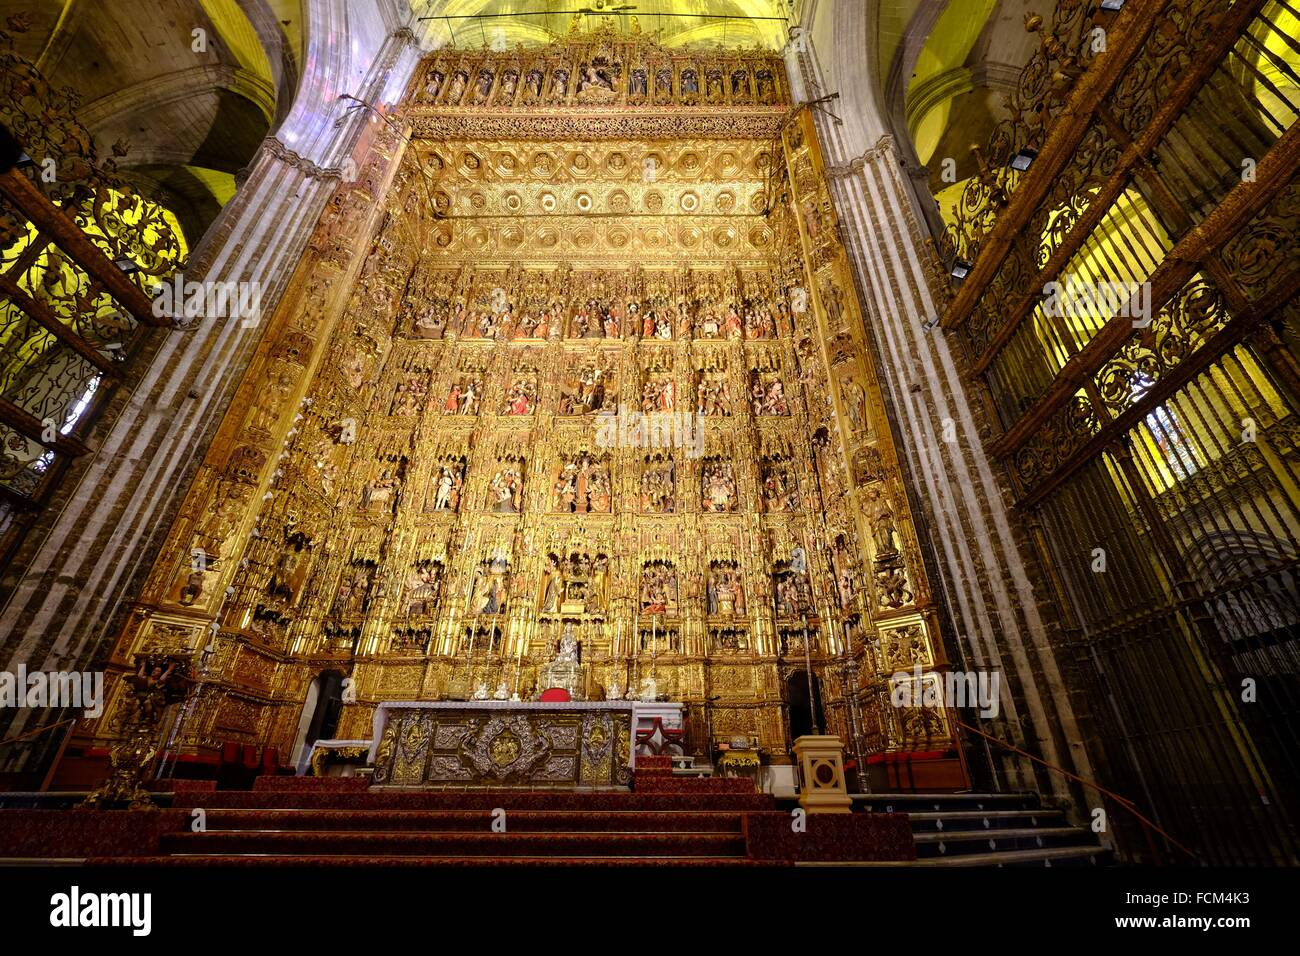 Pierre Dancart´s masterpiece, considered one of the finest altarpieces in the world, Sevilla Cathedral, Andalusia, - Stock Image